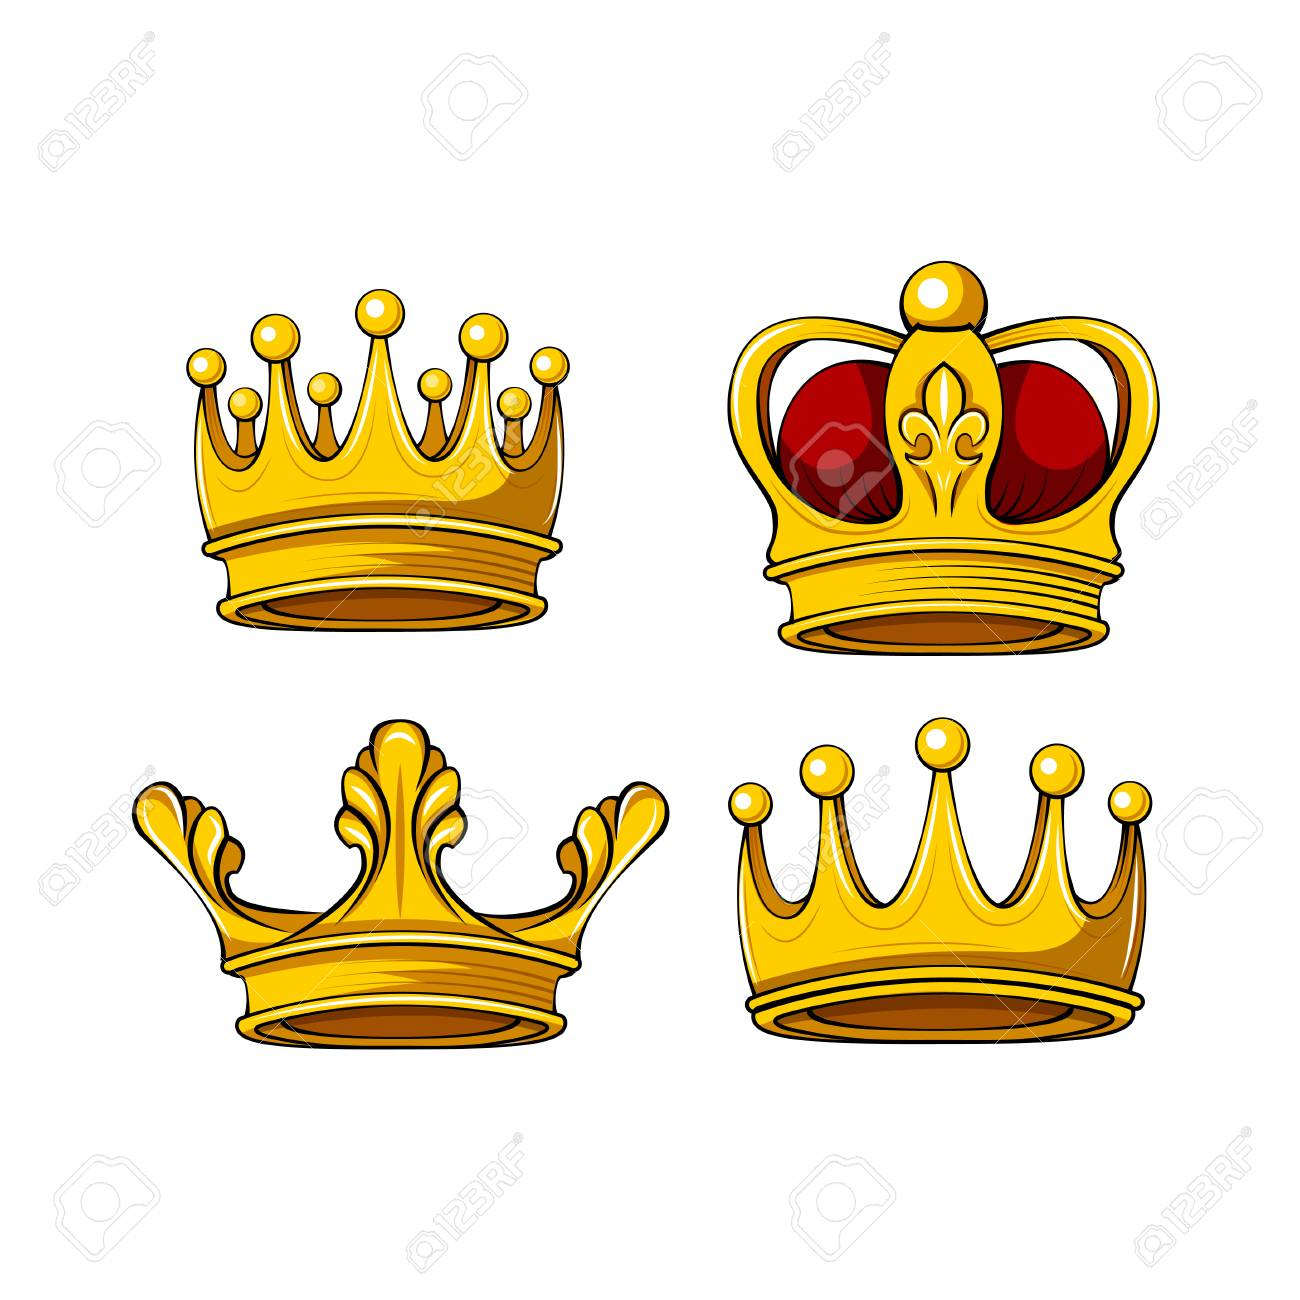 Cartoon royal crown icons set. Vector king, queen, prince, princess...